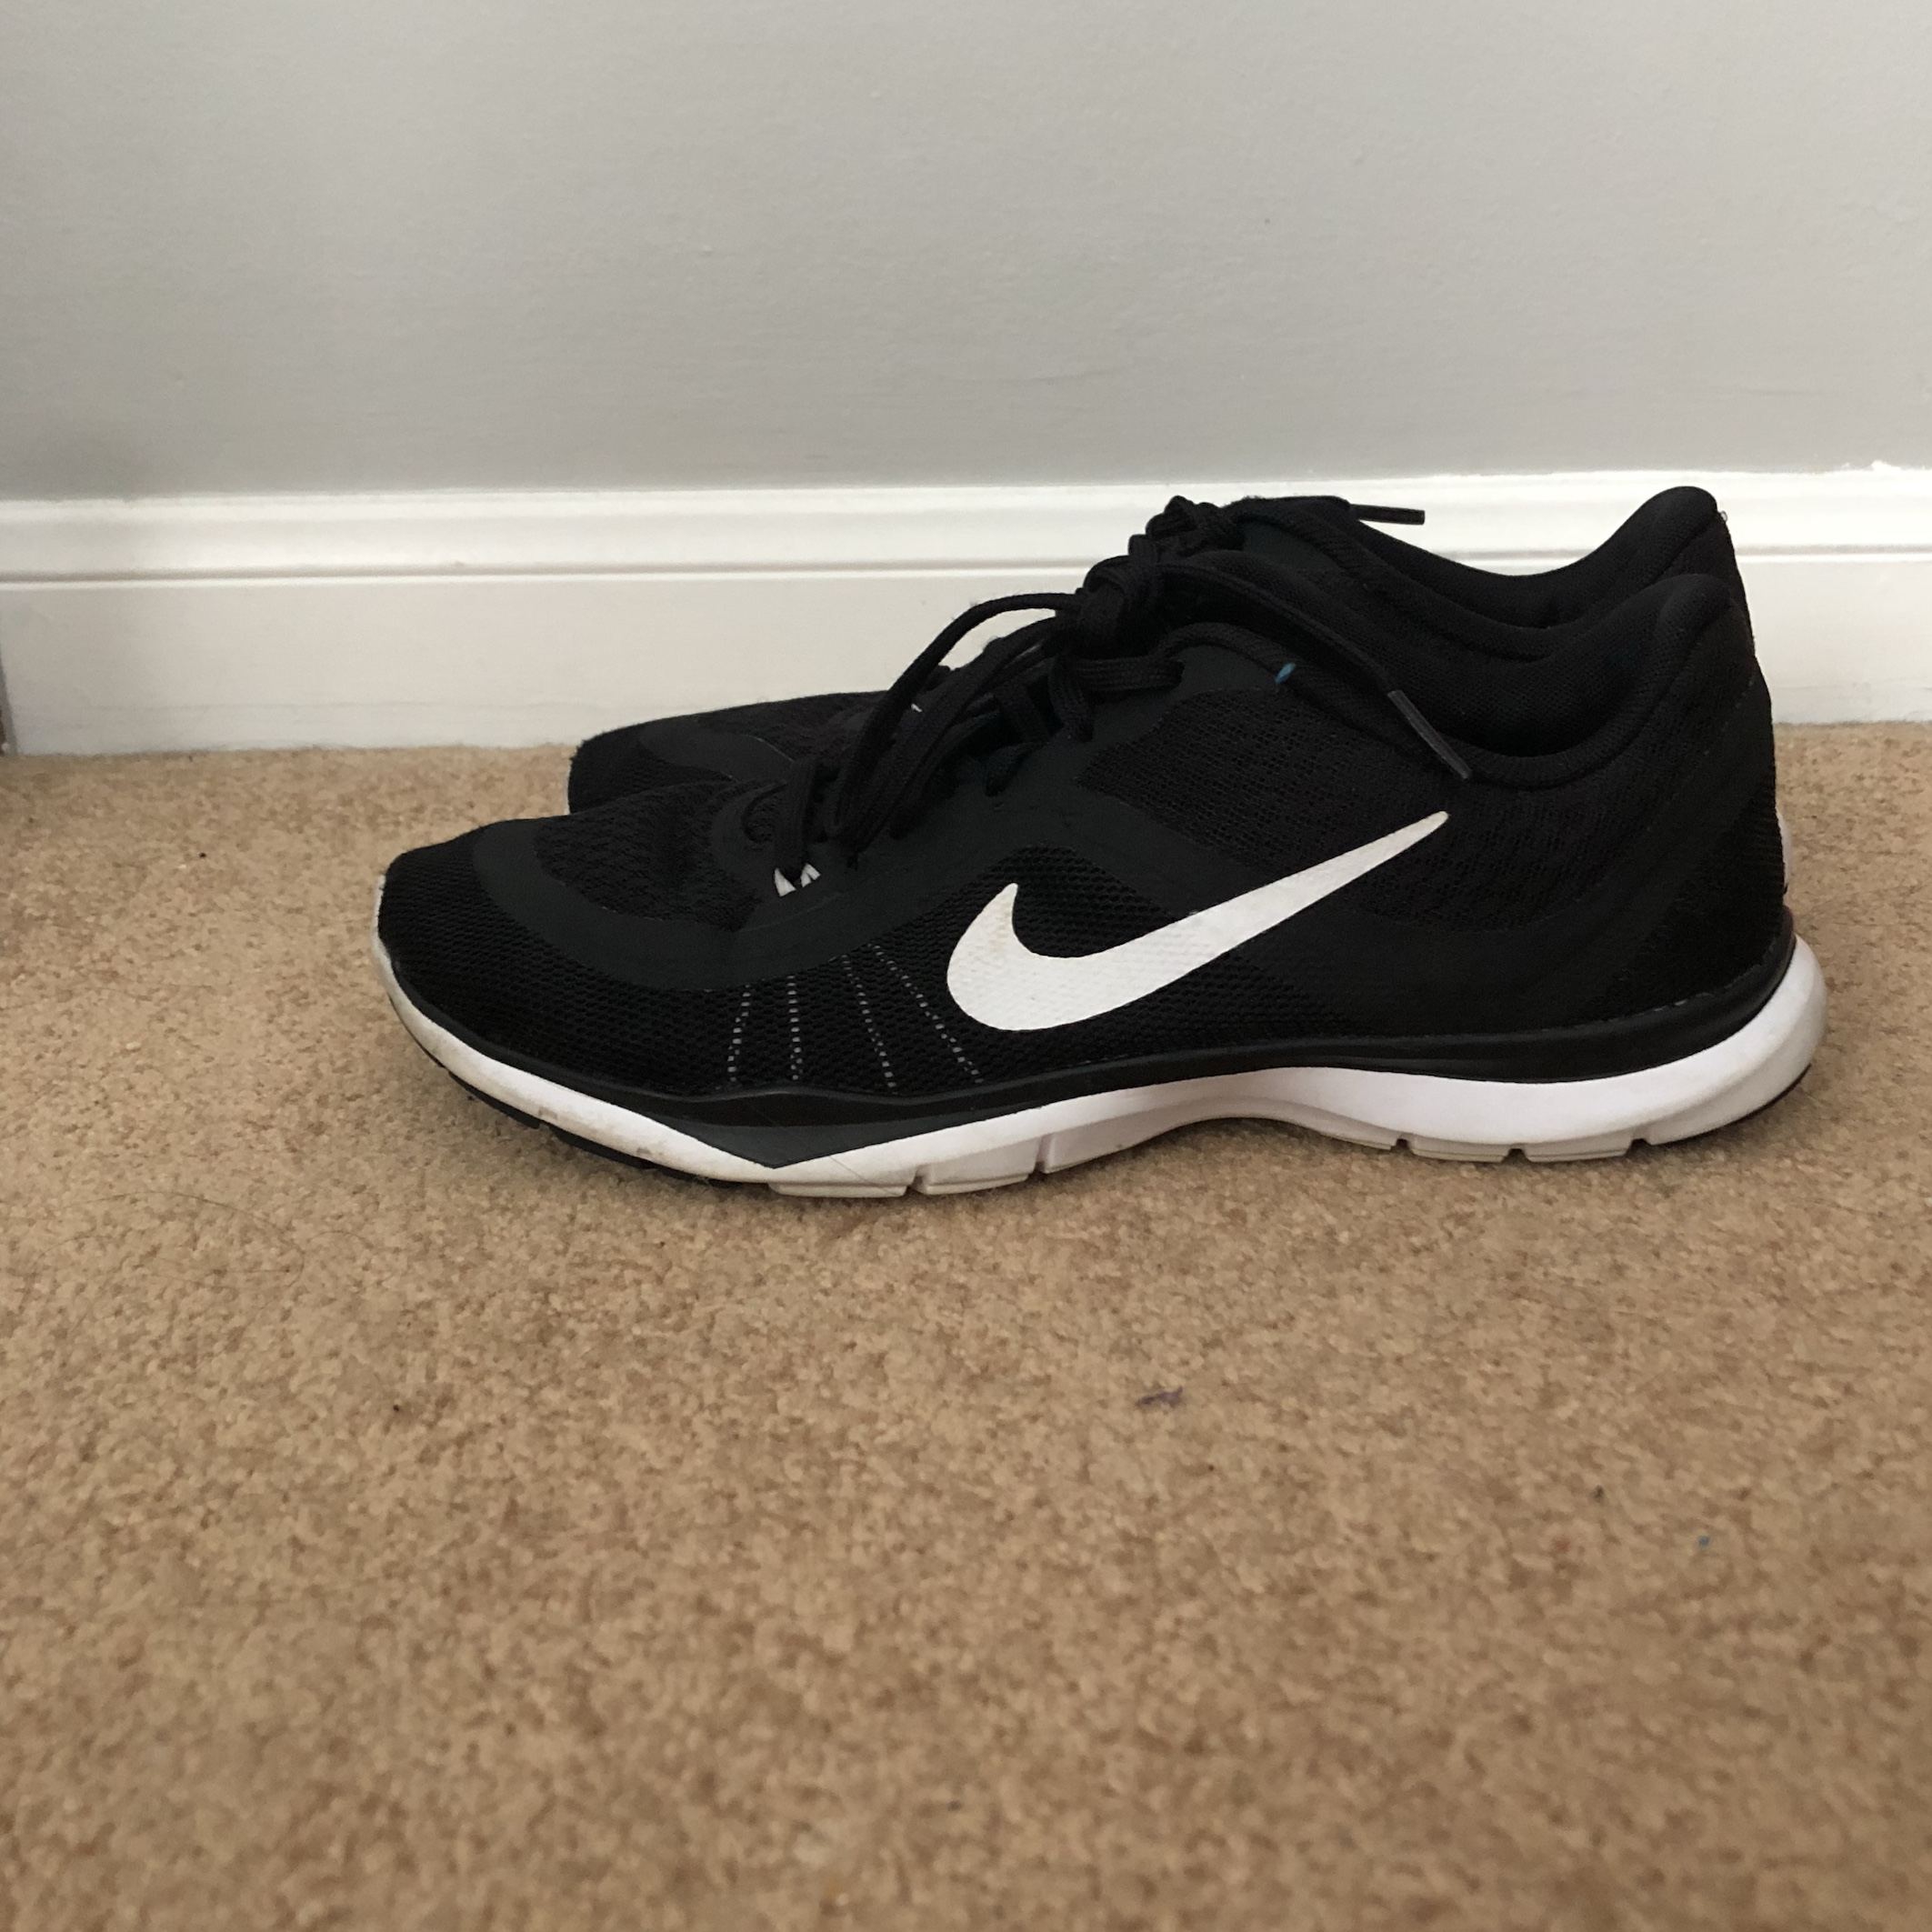 premium selection 2ccda 6b88c VERY GENTLY USED NIKE FLEX TR 6. Size 8.5 very comfy ...